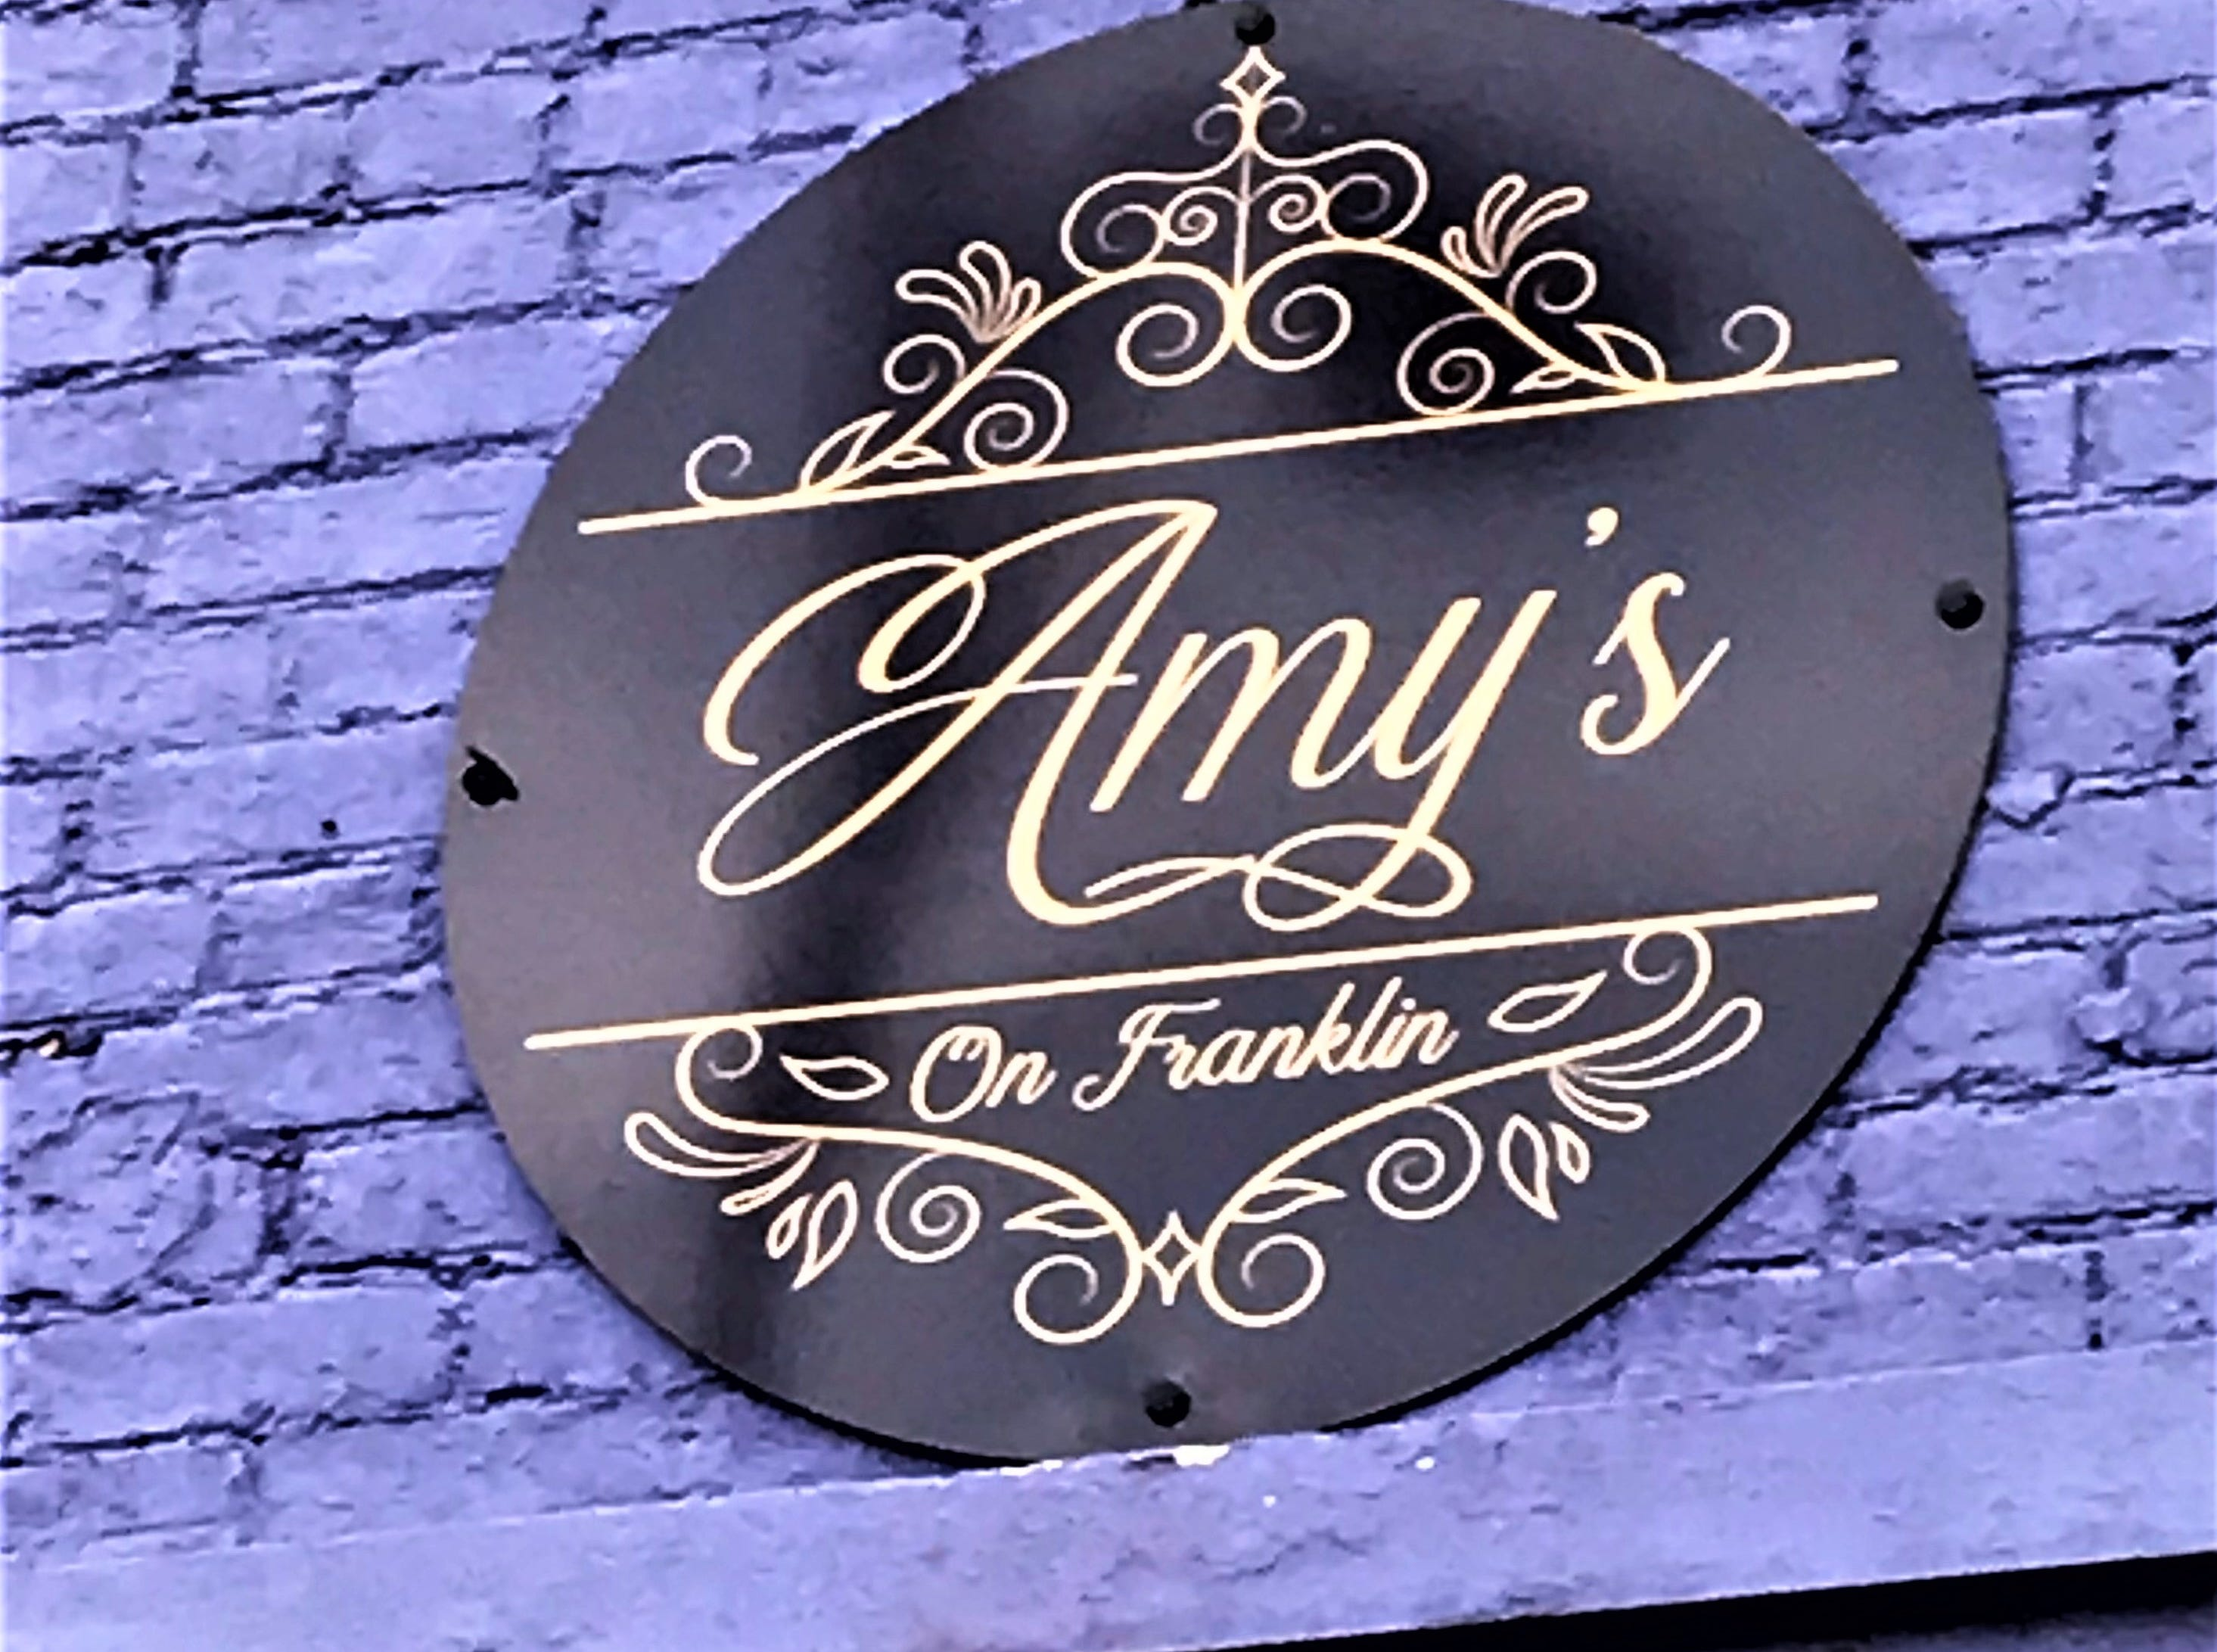 Amy's on Franklin is located at 1418 W. Franklin St., just across from the Lamasco Bar and Grill. It's hard to miss.